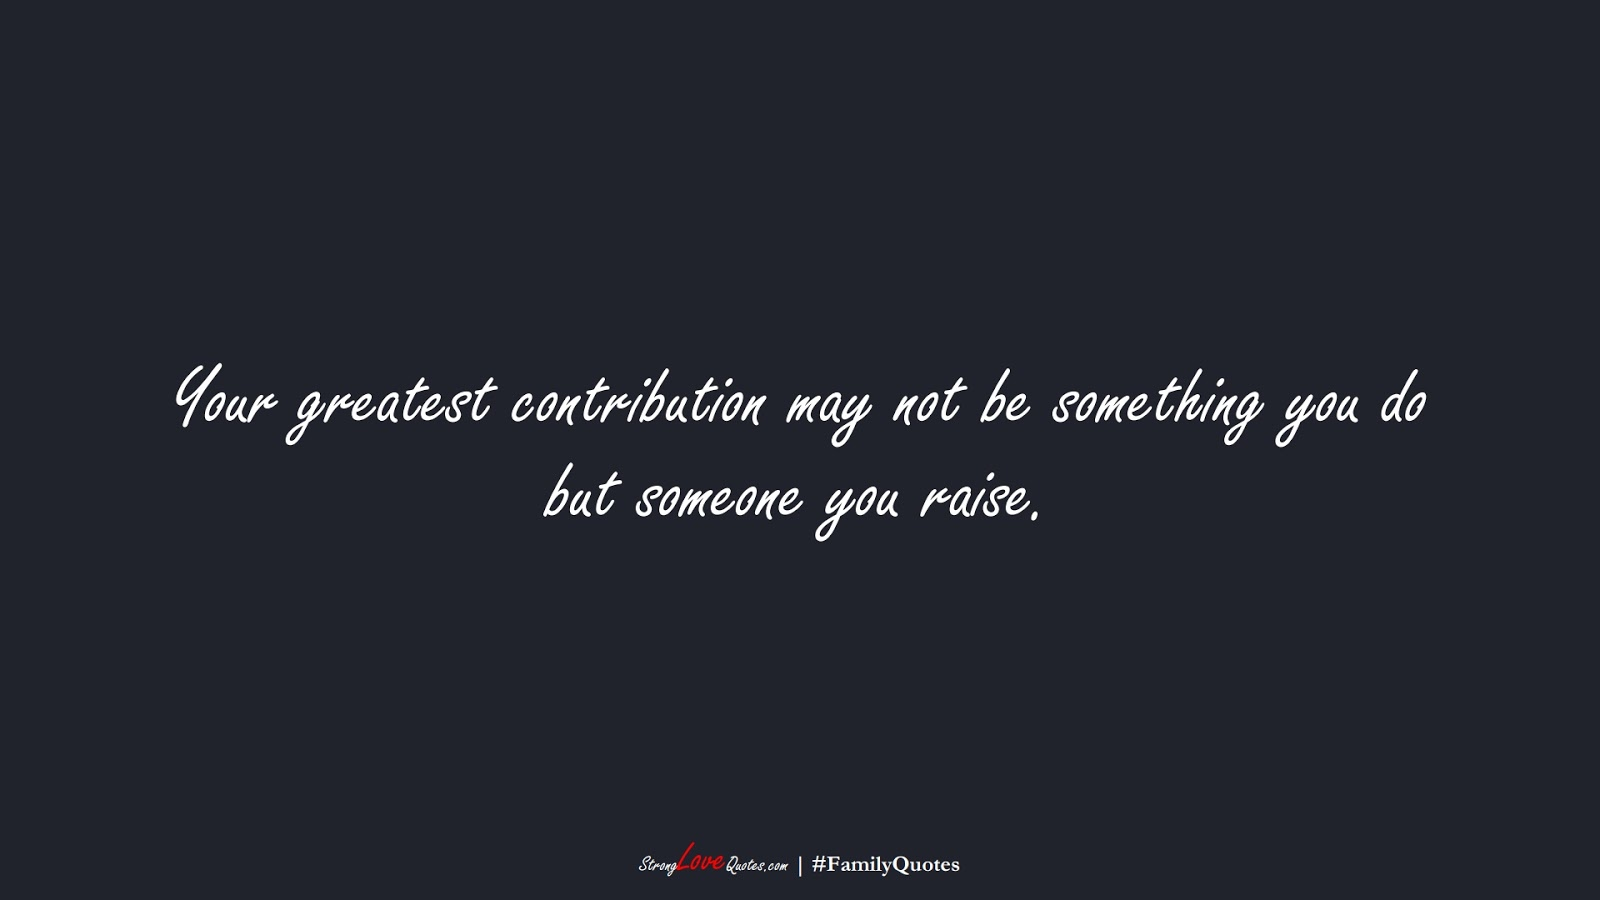 Your greatest contribution may not be something you do but someone you raise.FALSE